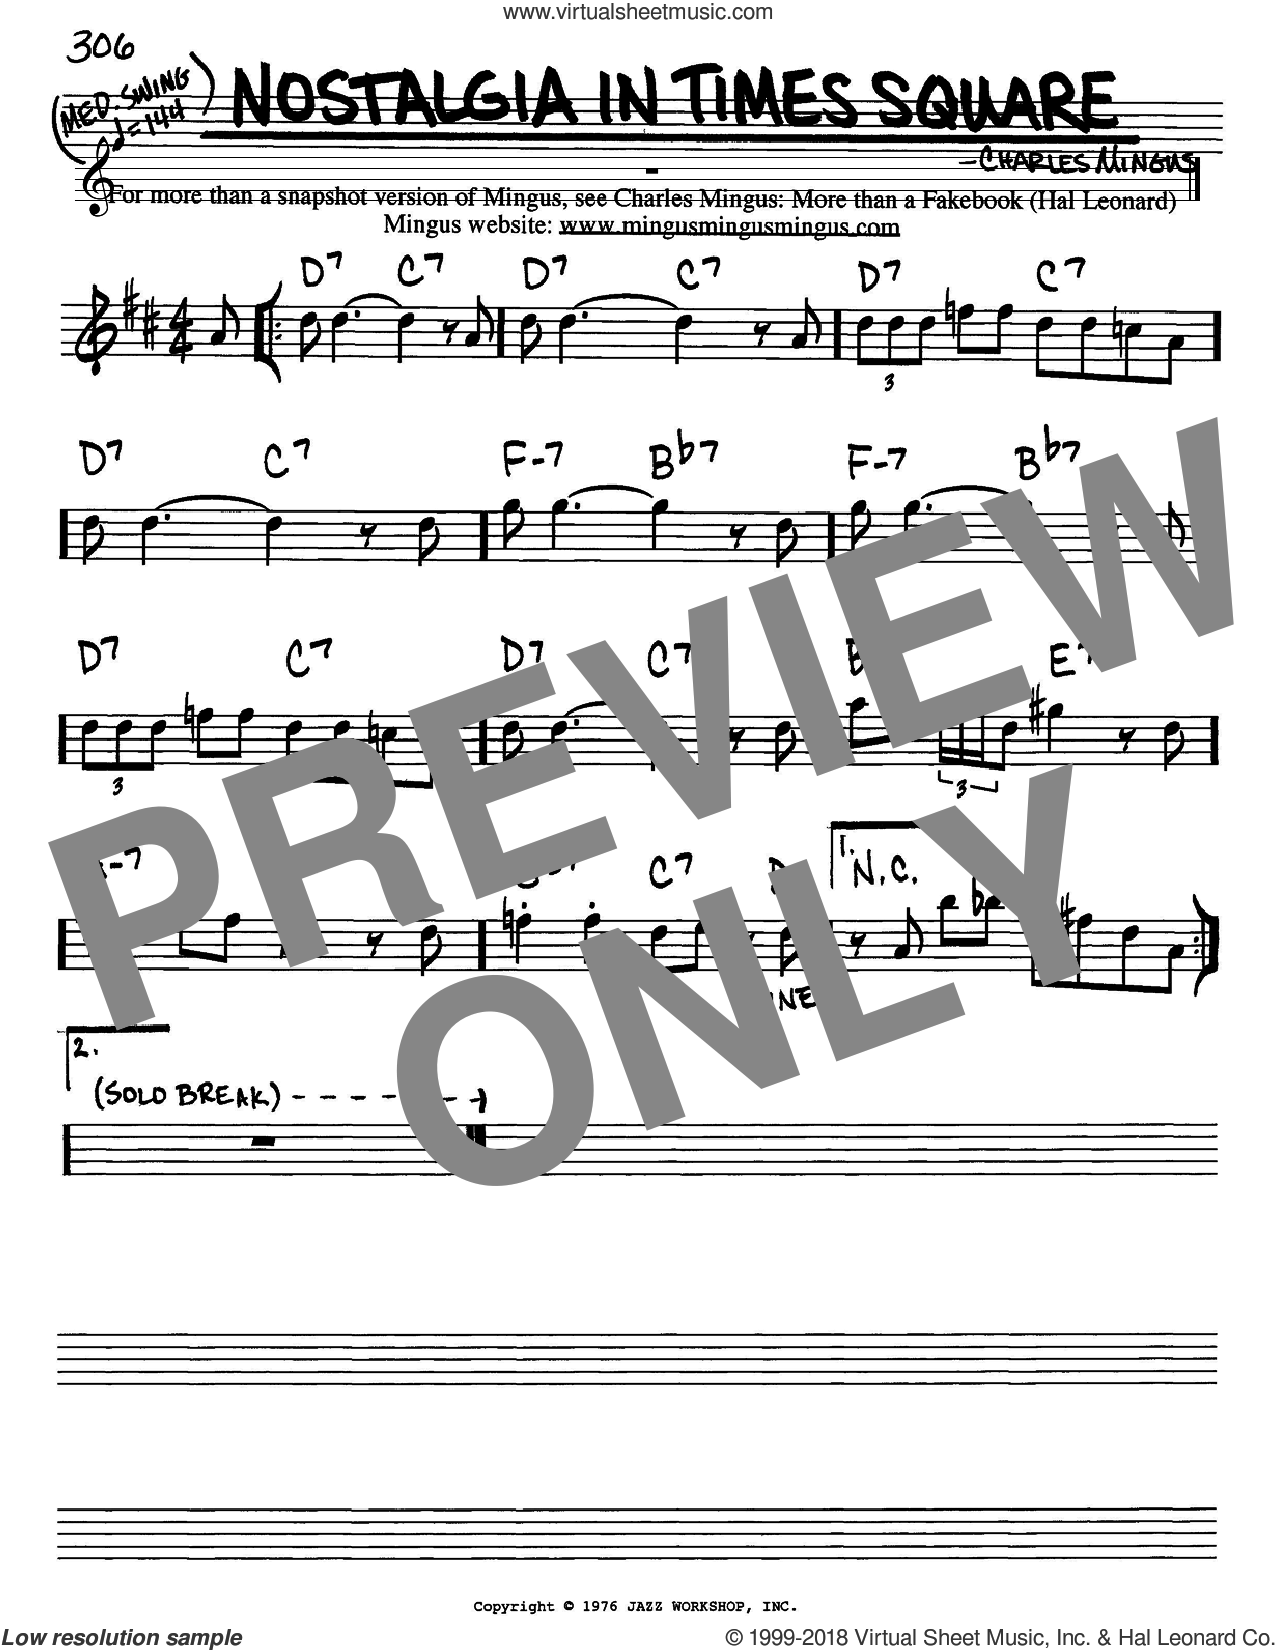 Nostalgia In Times Square sheet music for voice and other instruments (in Eb) by Charles Mingus, intermediate skill level